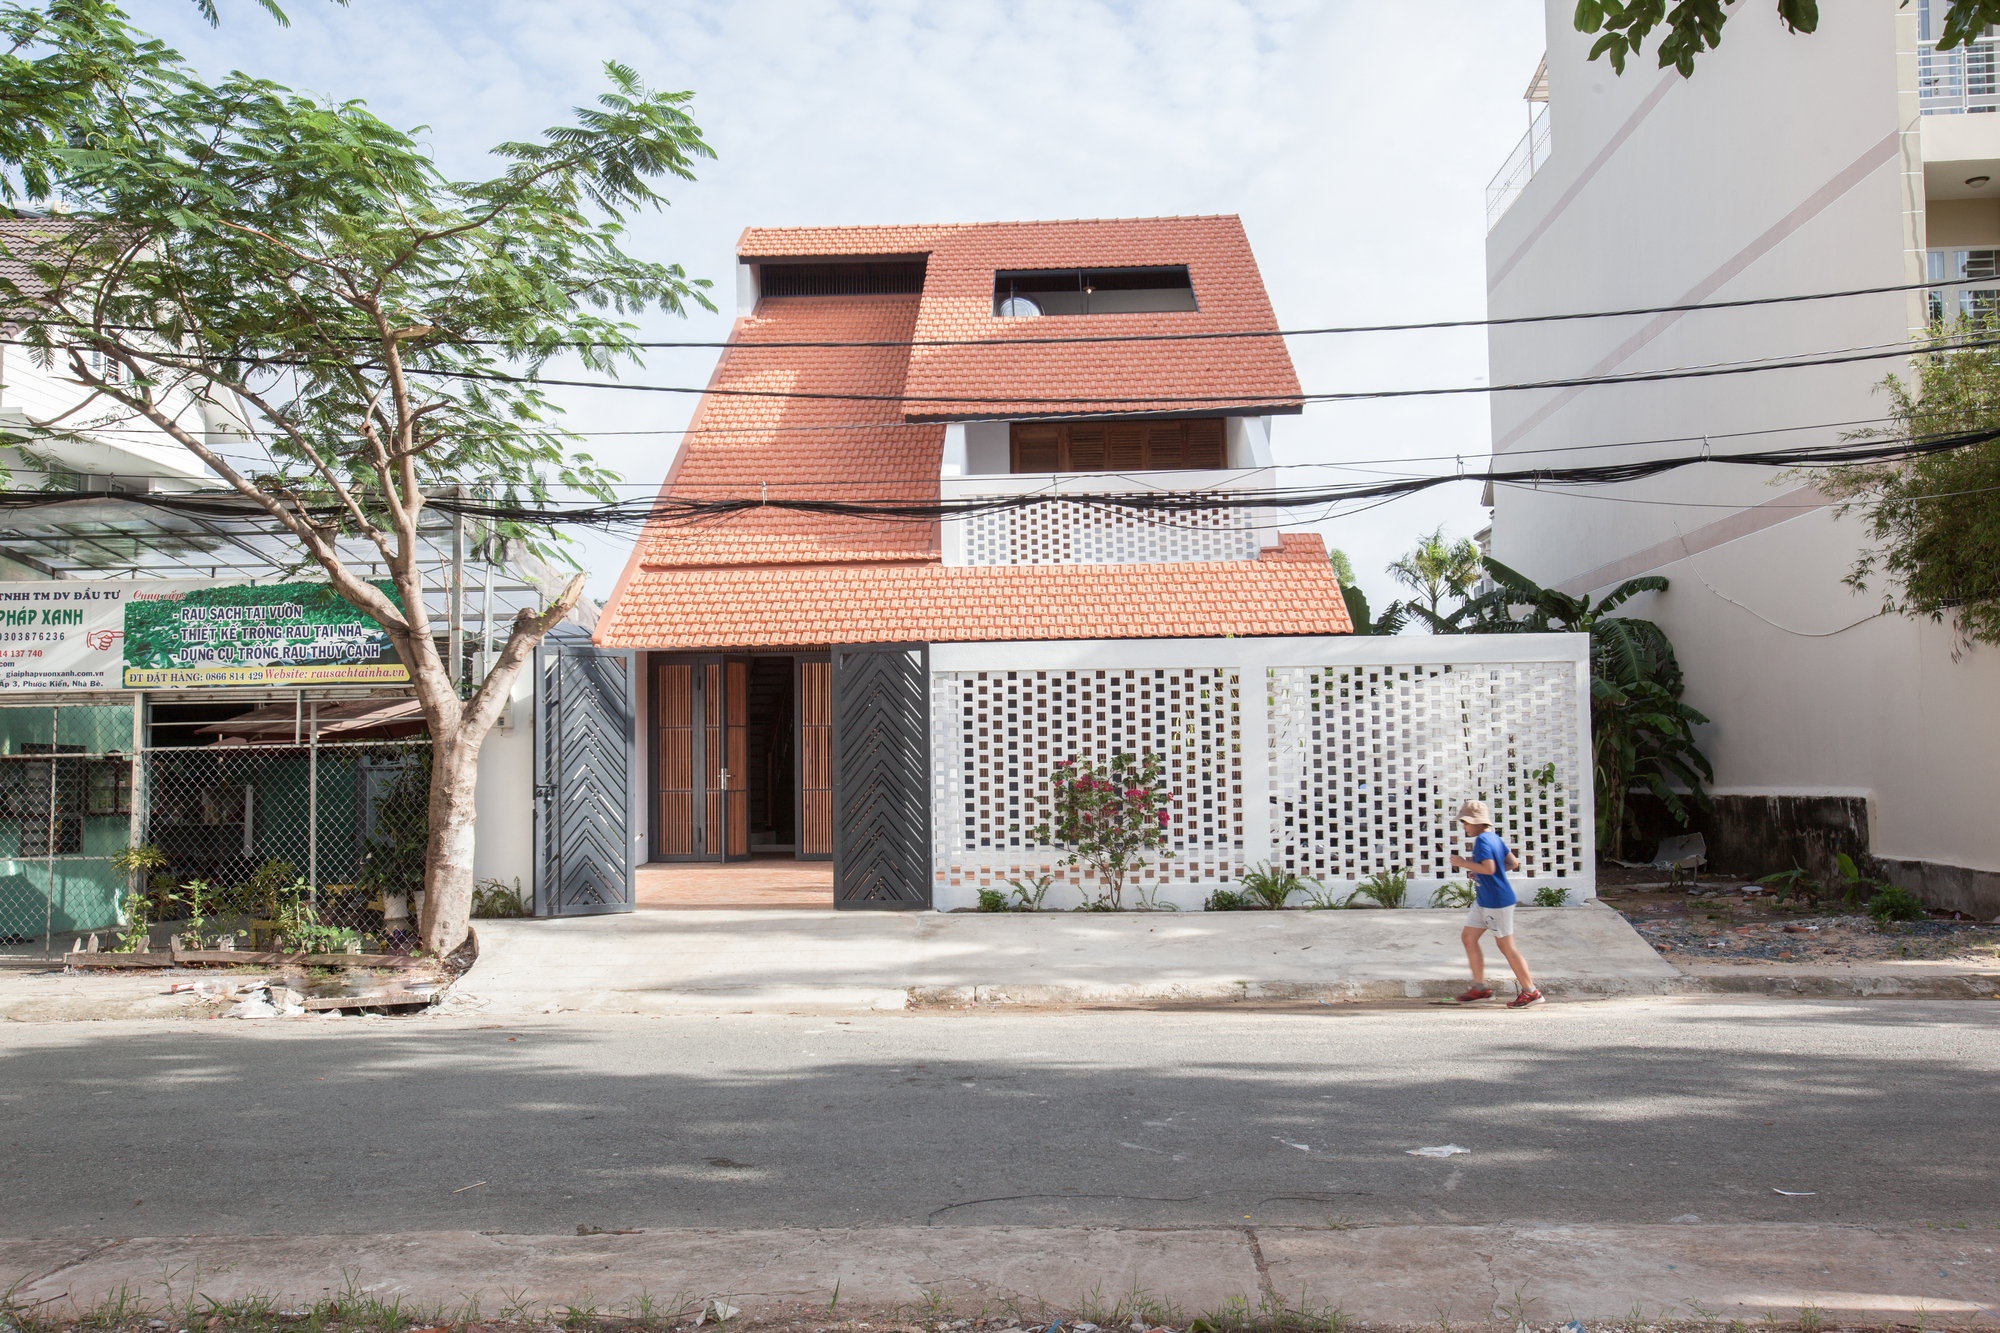 Tile Roof House K59 Atelier Archdaily